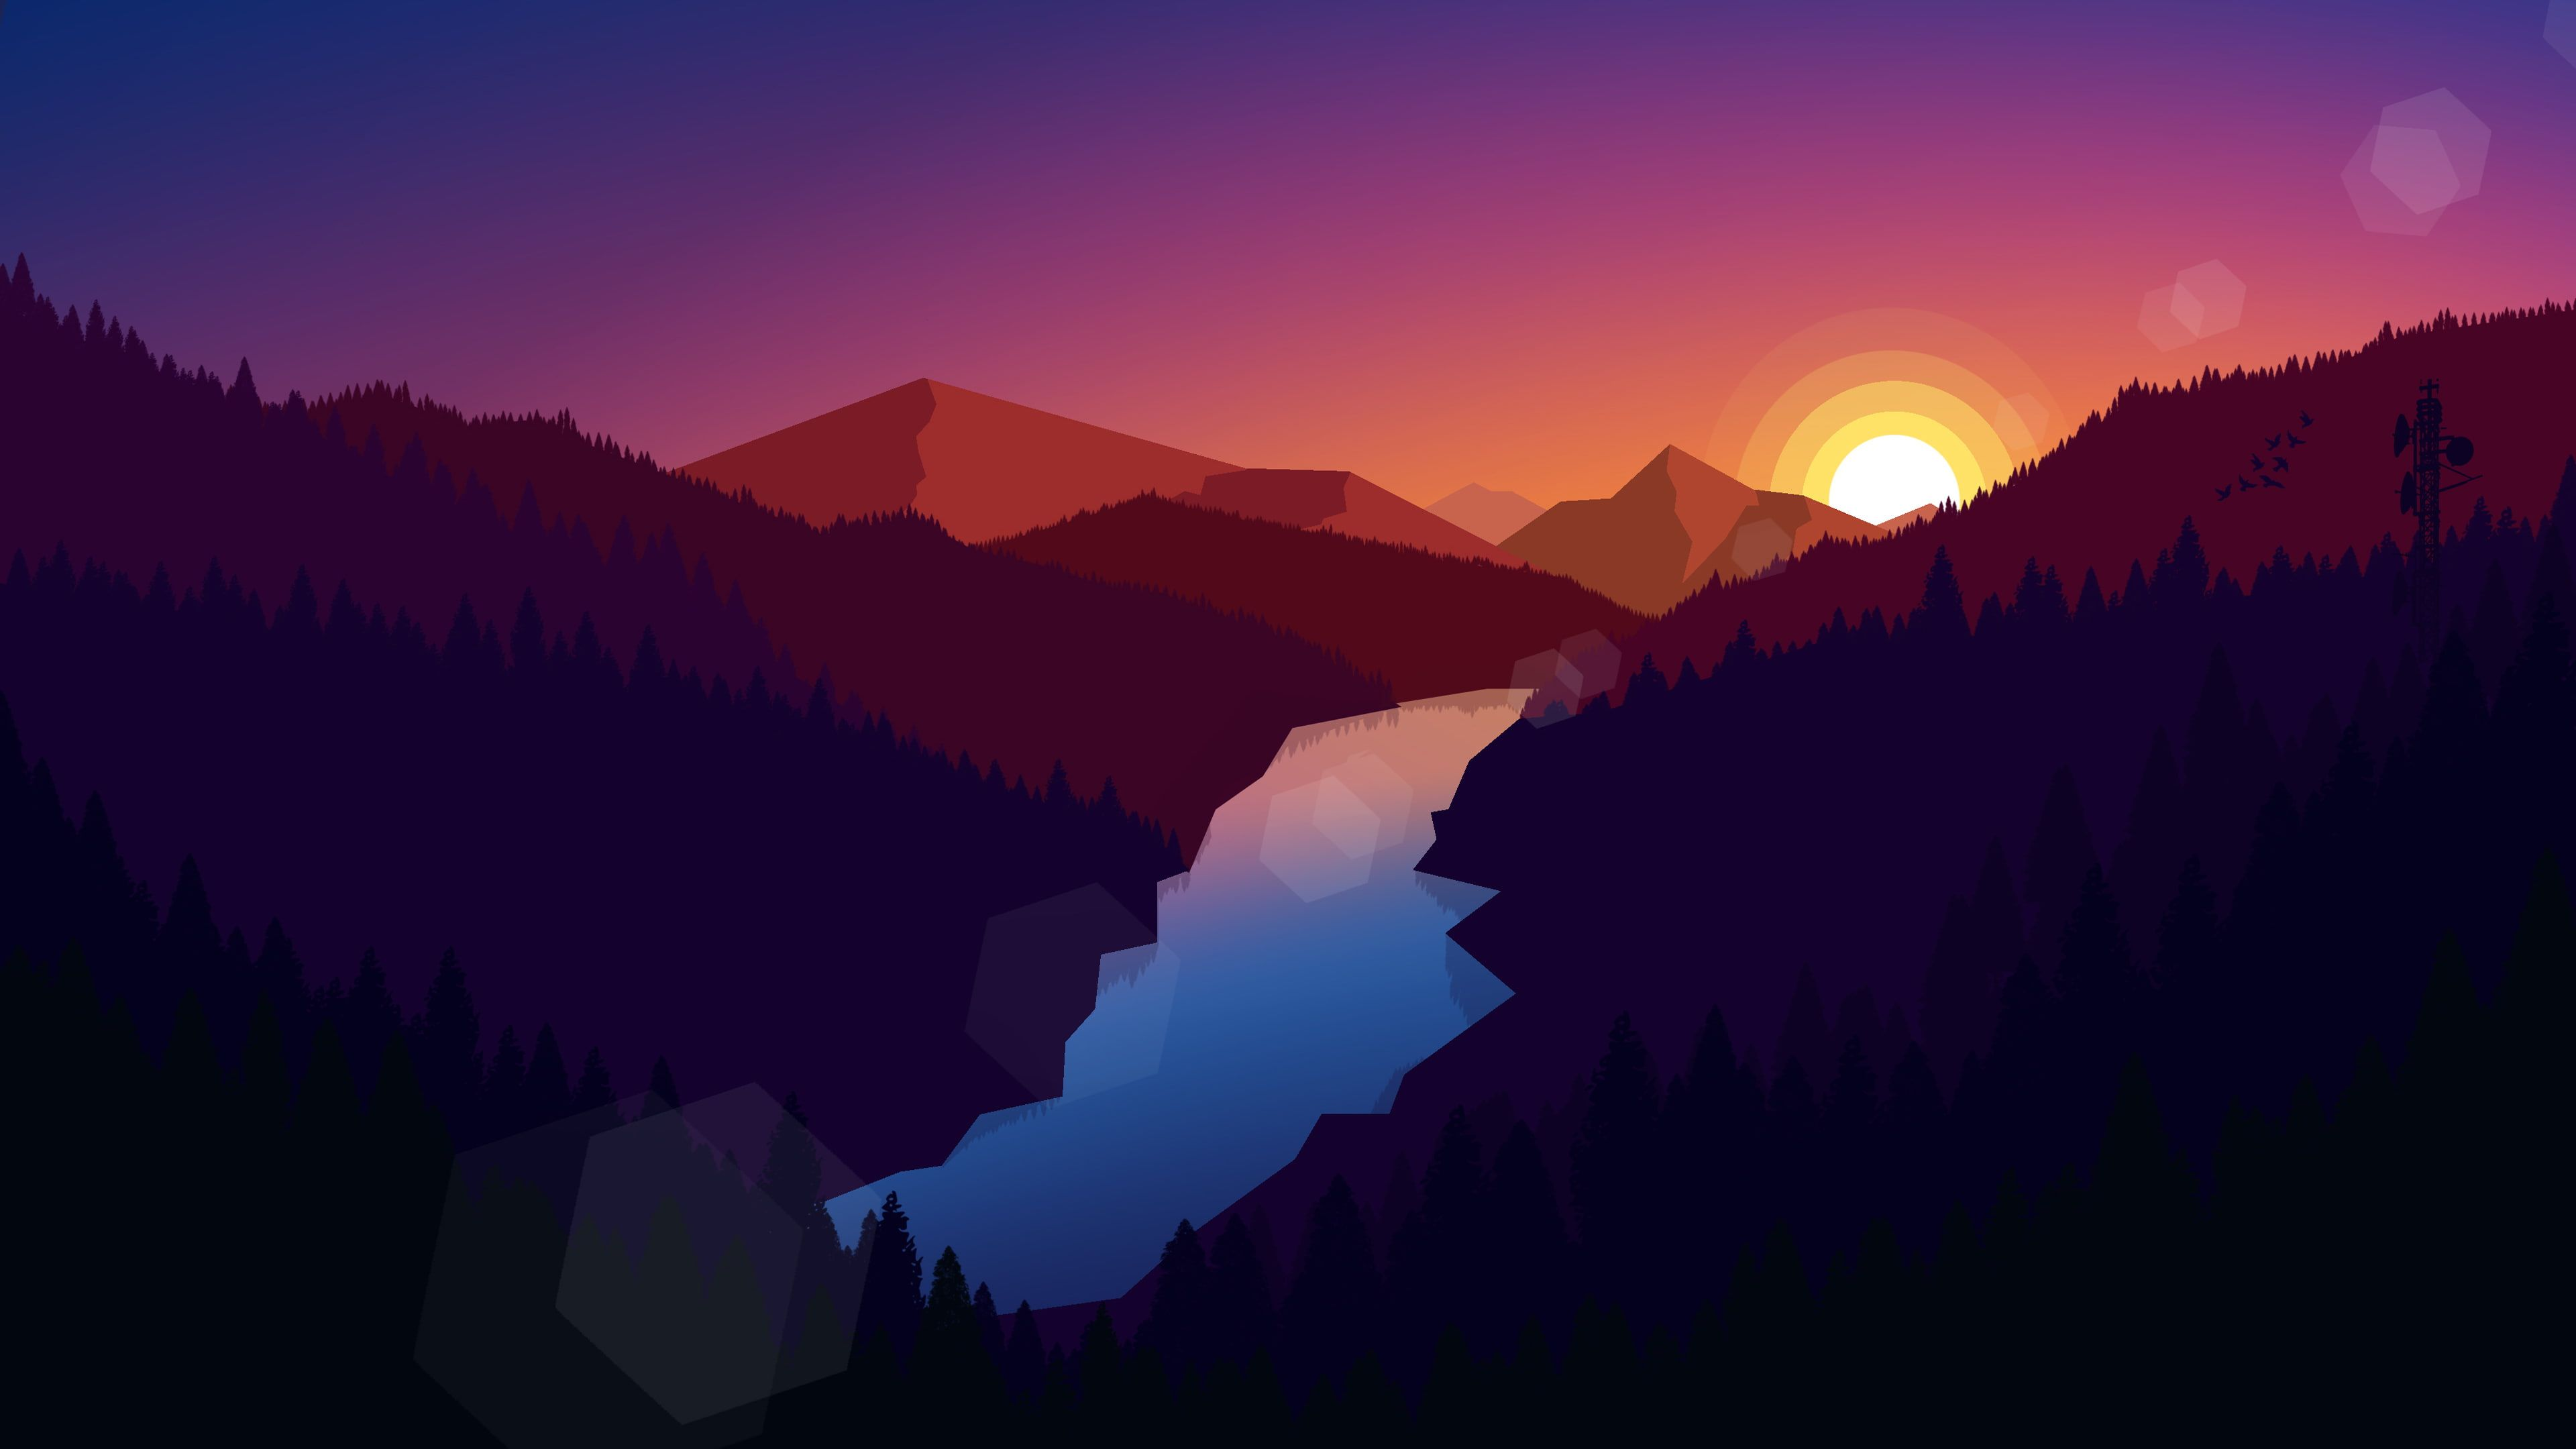 Forest Sunset Evening Minimalism Minimalist Hd Artist Artwork Digital Art 4k Dev In 2020 Minimalist Desktop Wallpaper Desktop Wallpaper Art Desktop Wallpaper